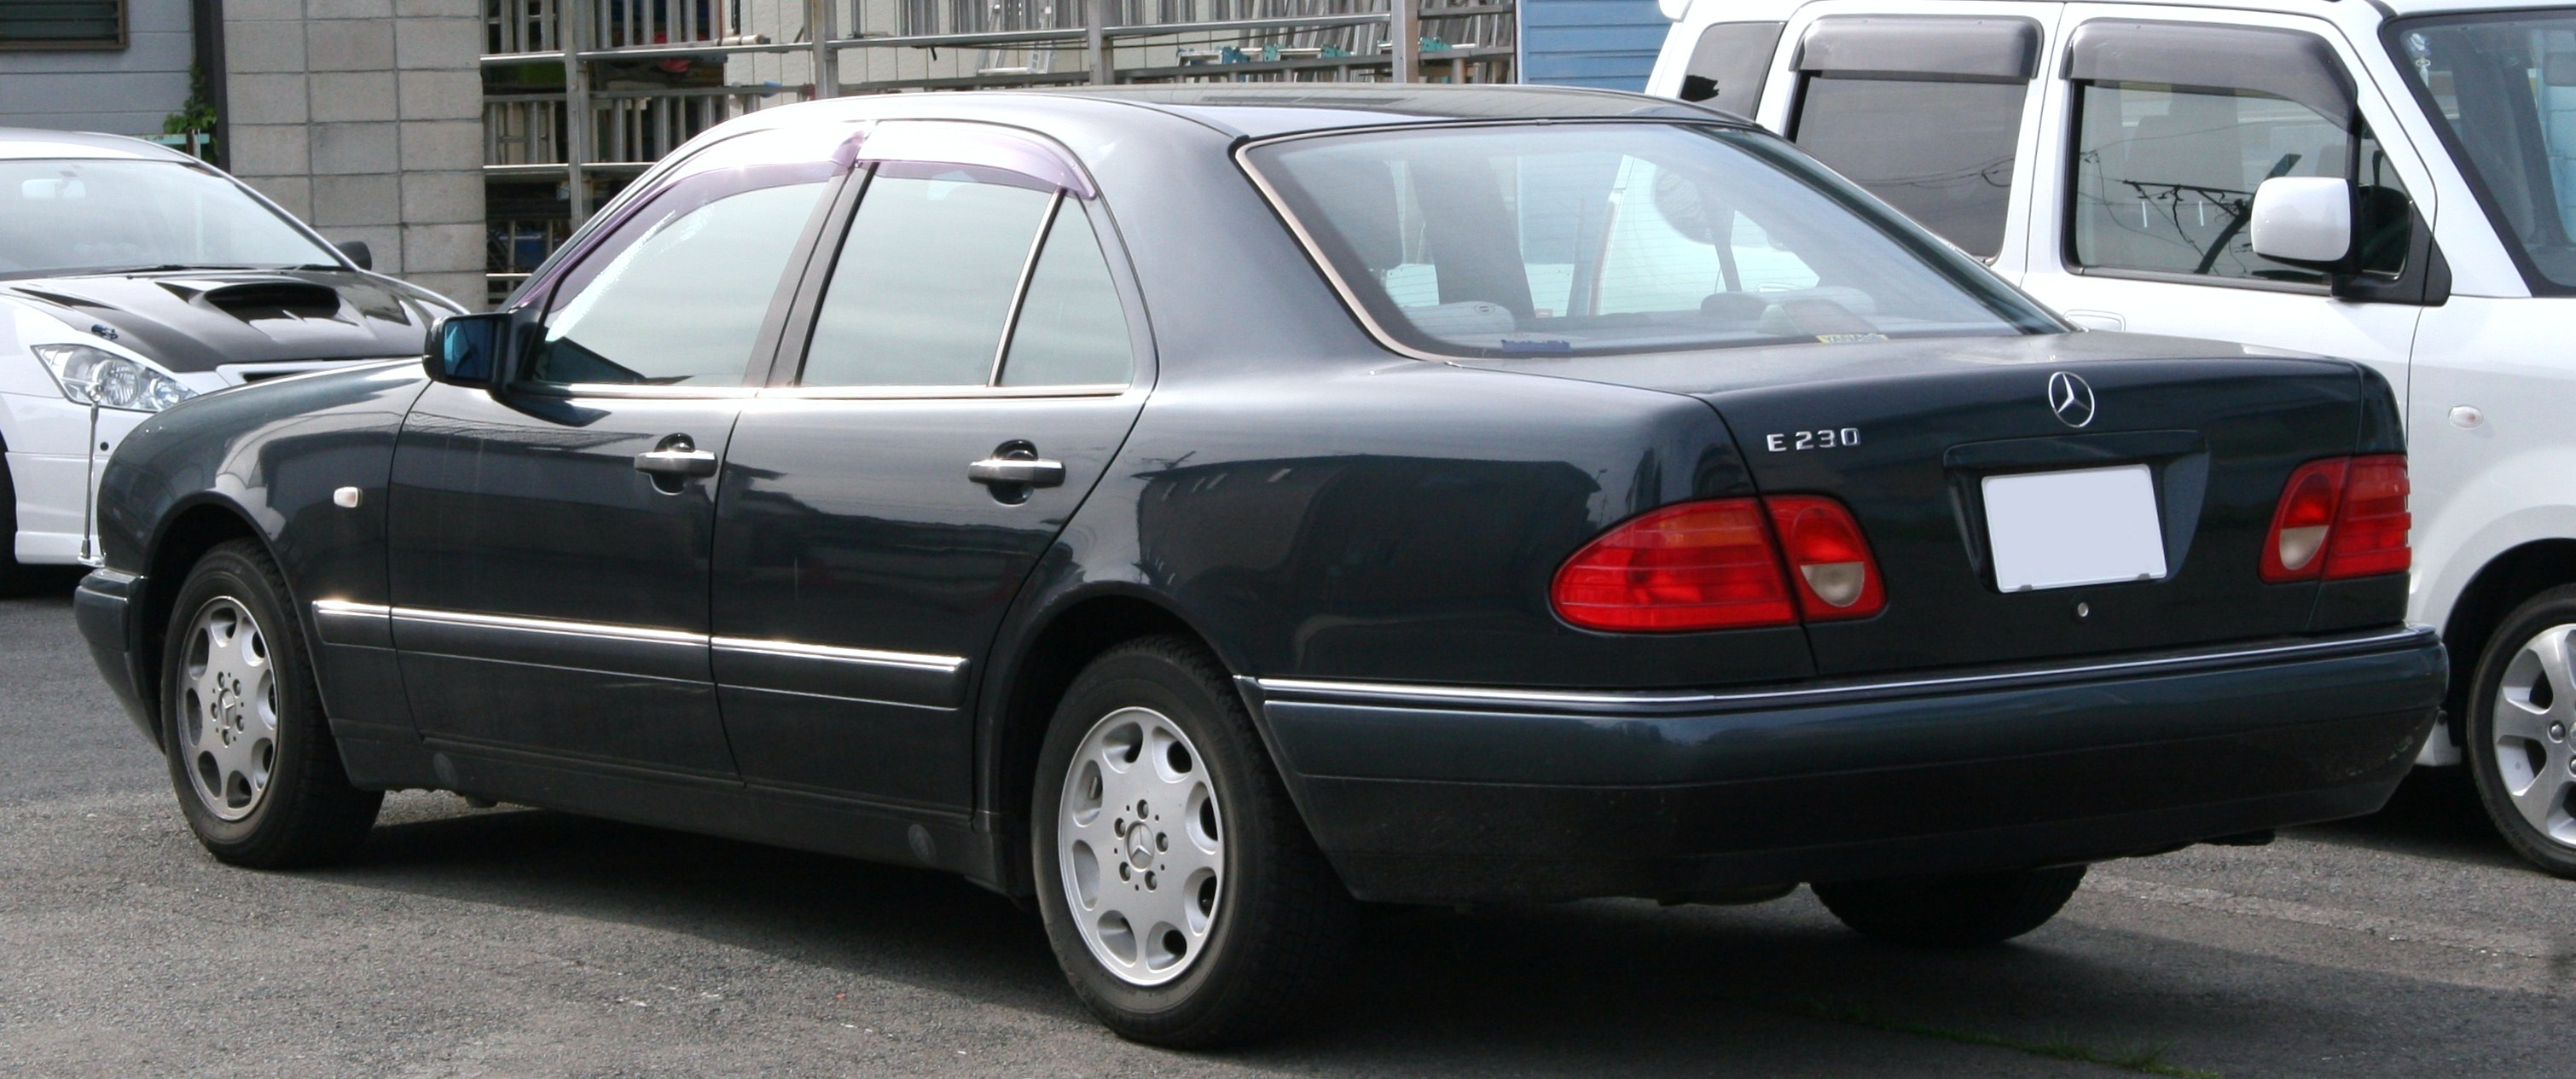 https://upload.wikimedia.org/wikipedia/commons/8/88/Mercedes-Benz_E230_W210_rear.jpg